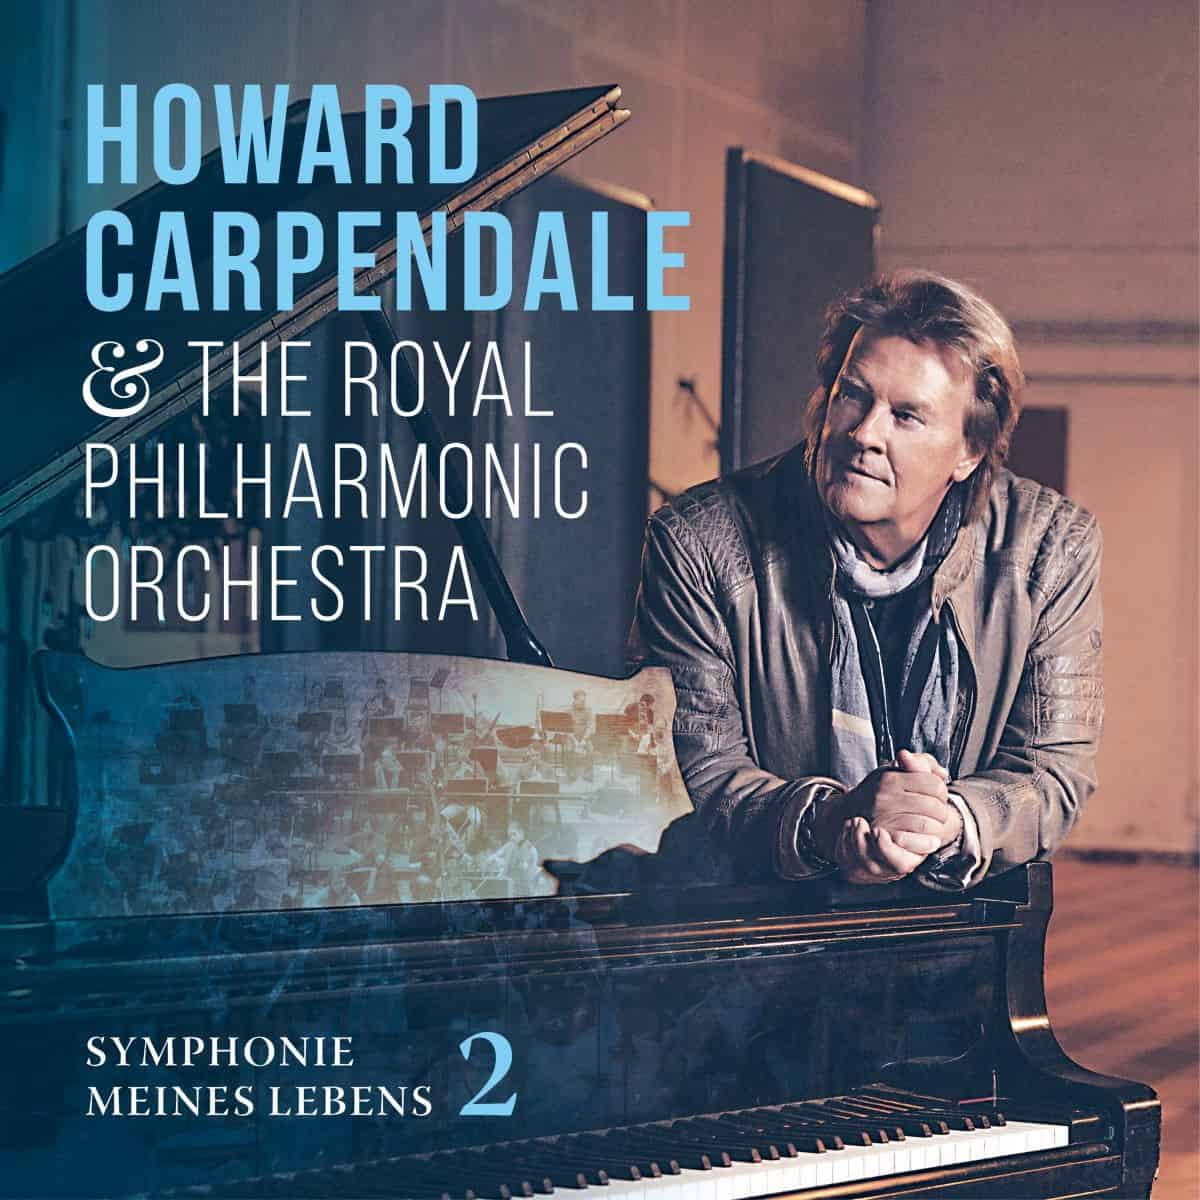 Howard Carpendale & The Royal Philharmonic Orchestra - Symphonie meines Lebens 2